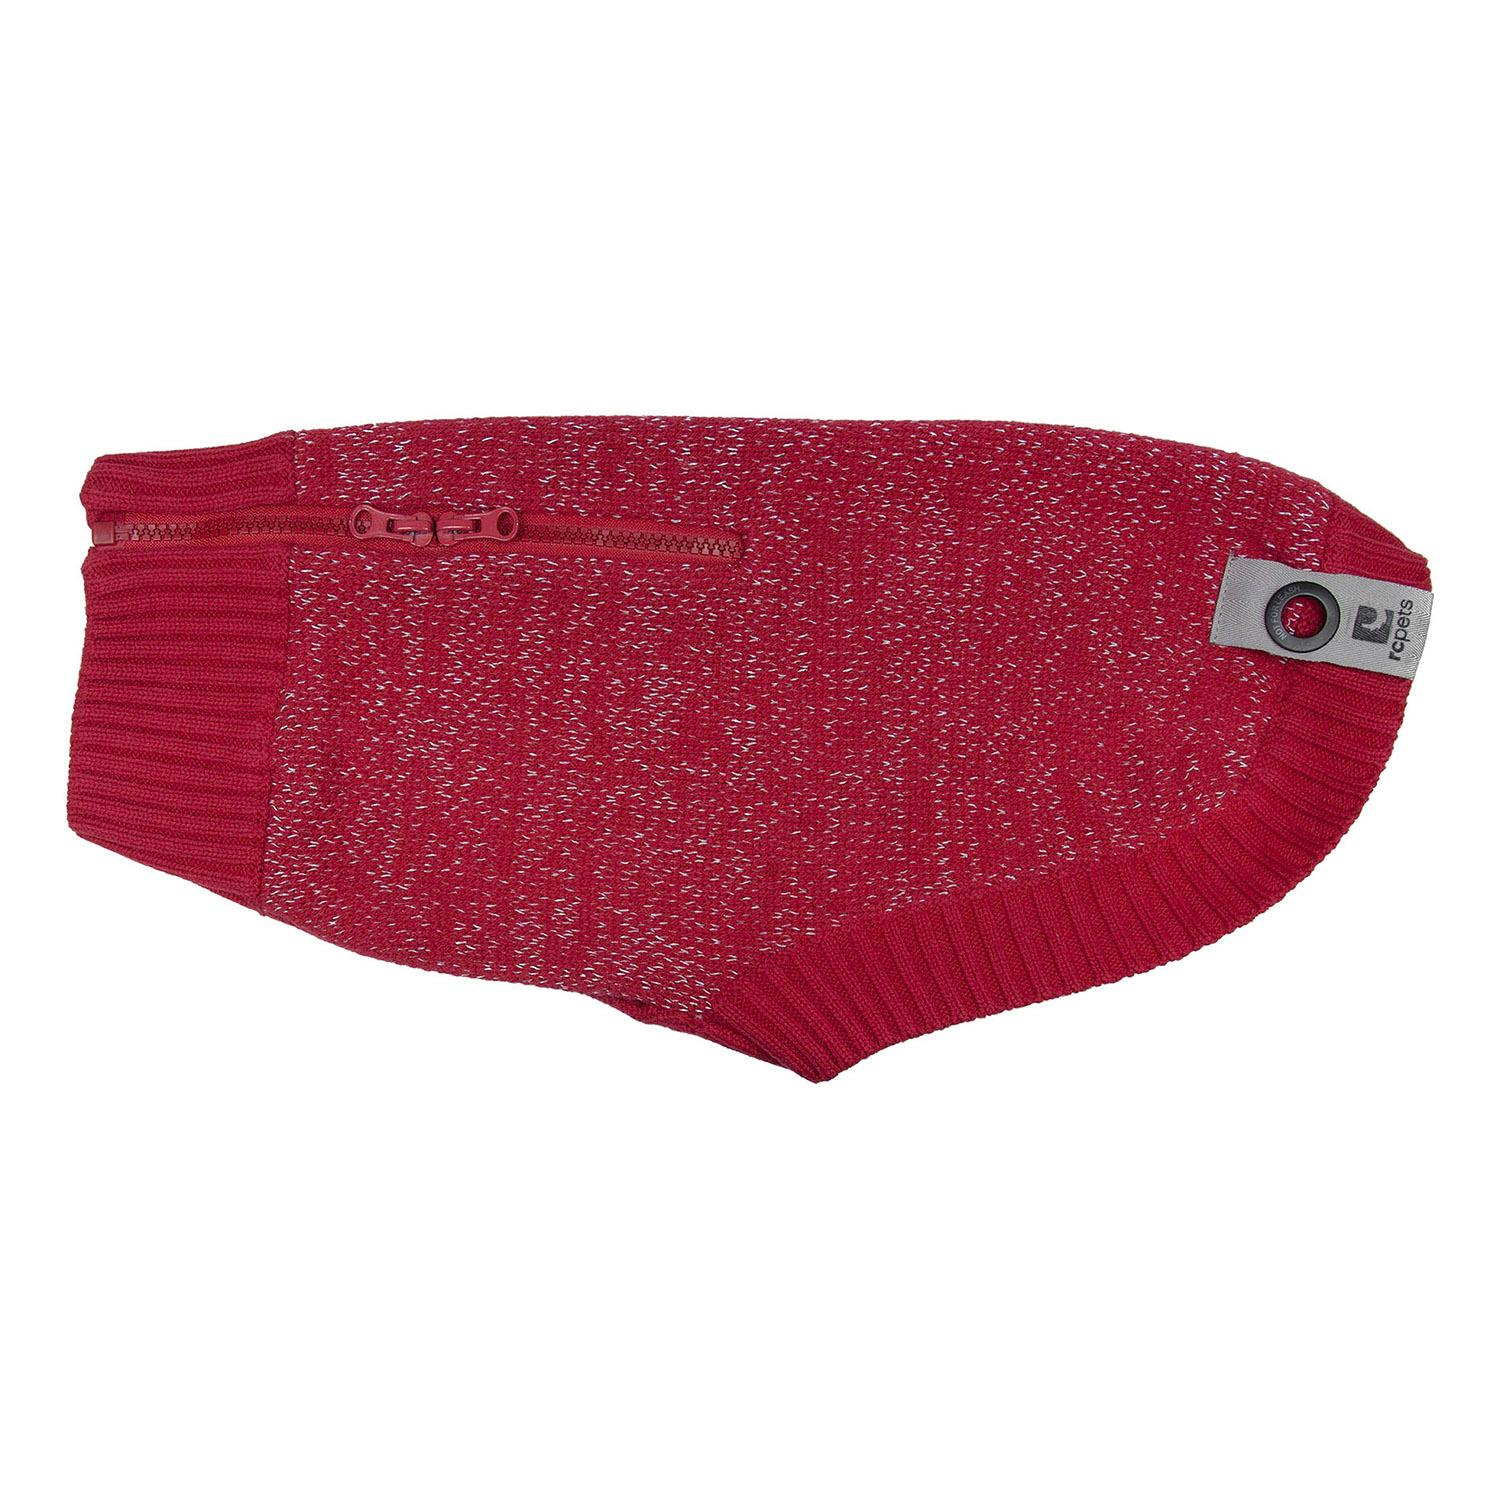 Polaris Reflective Dog Sweater - Red